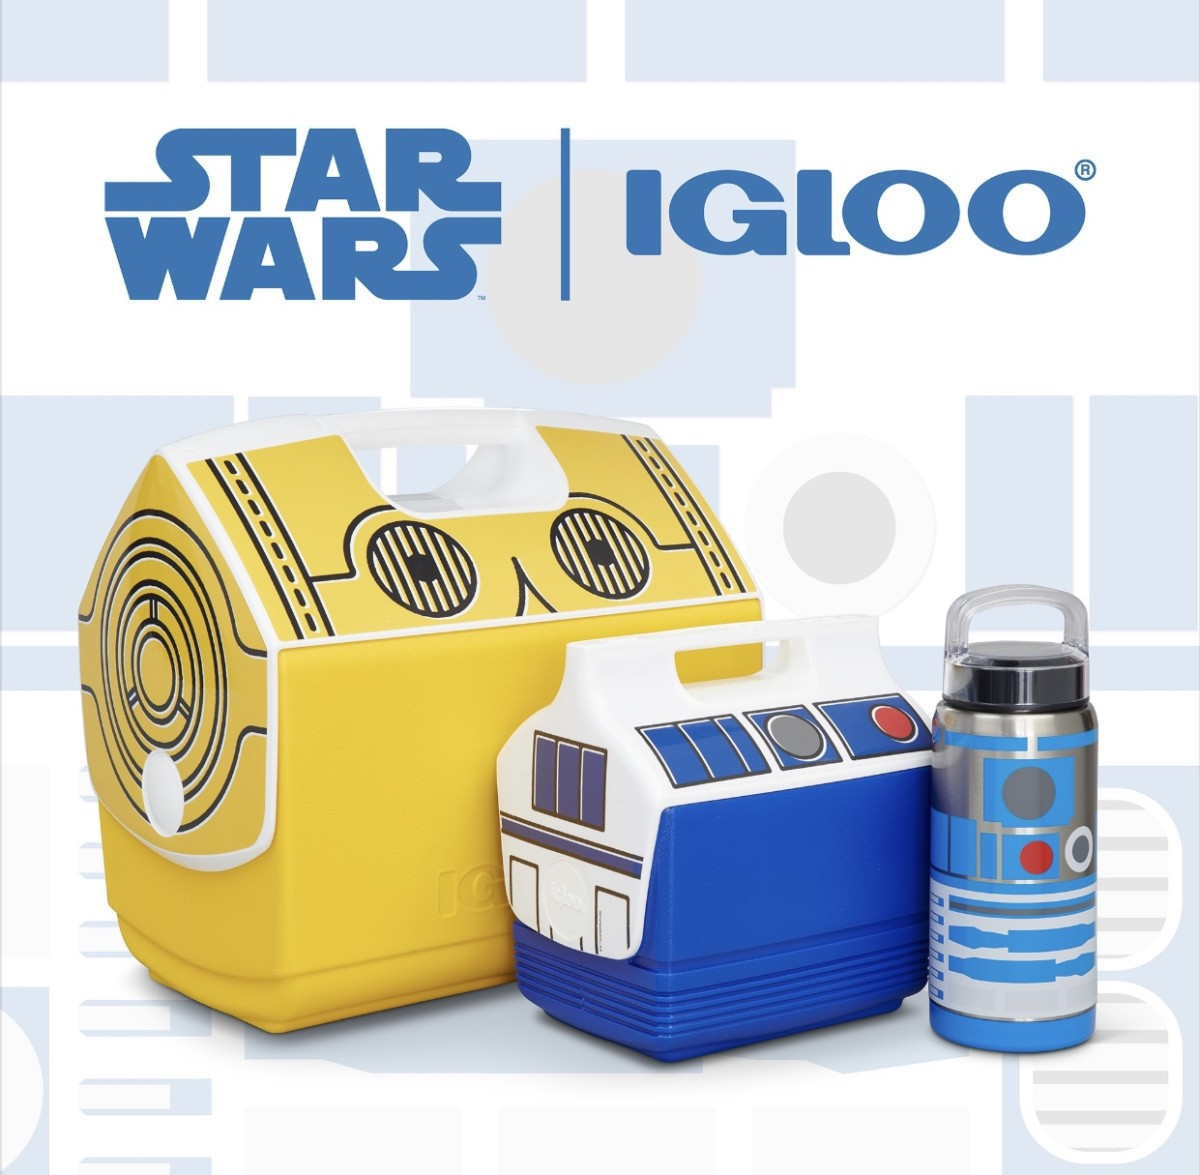 See the Star Wars Collection from Igloo! 1